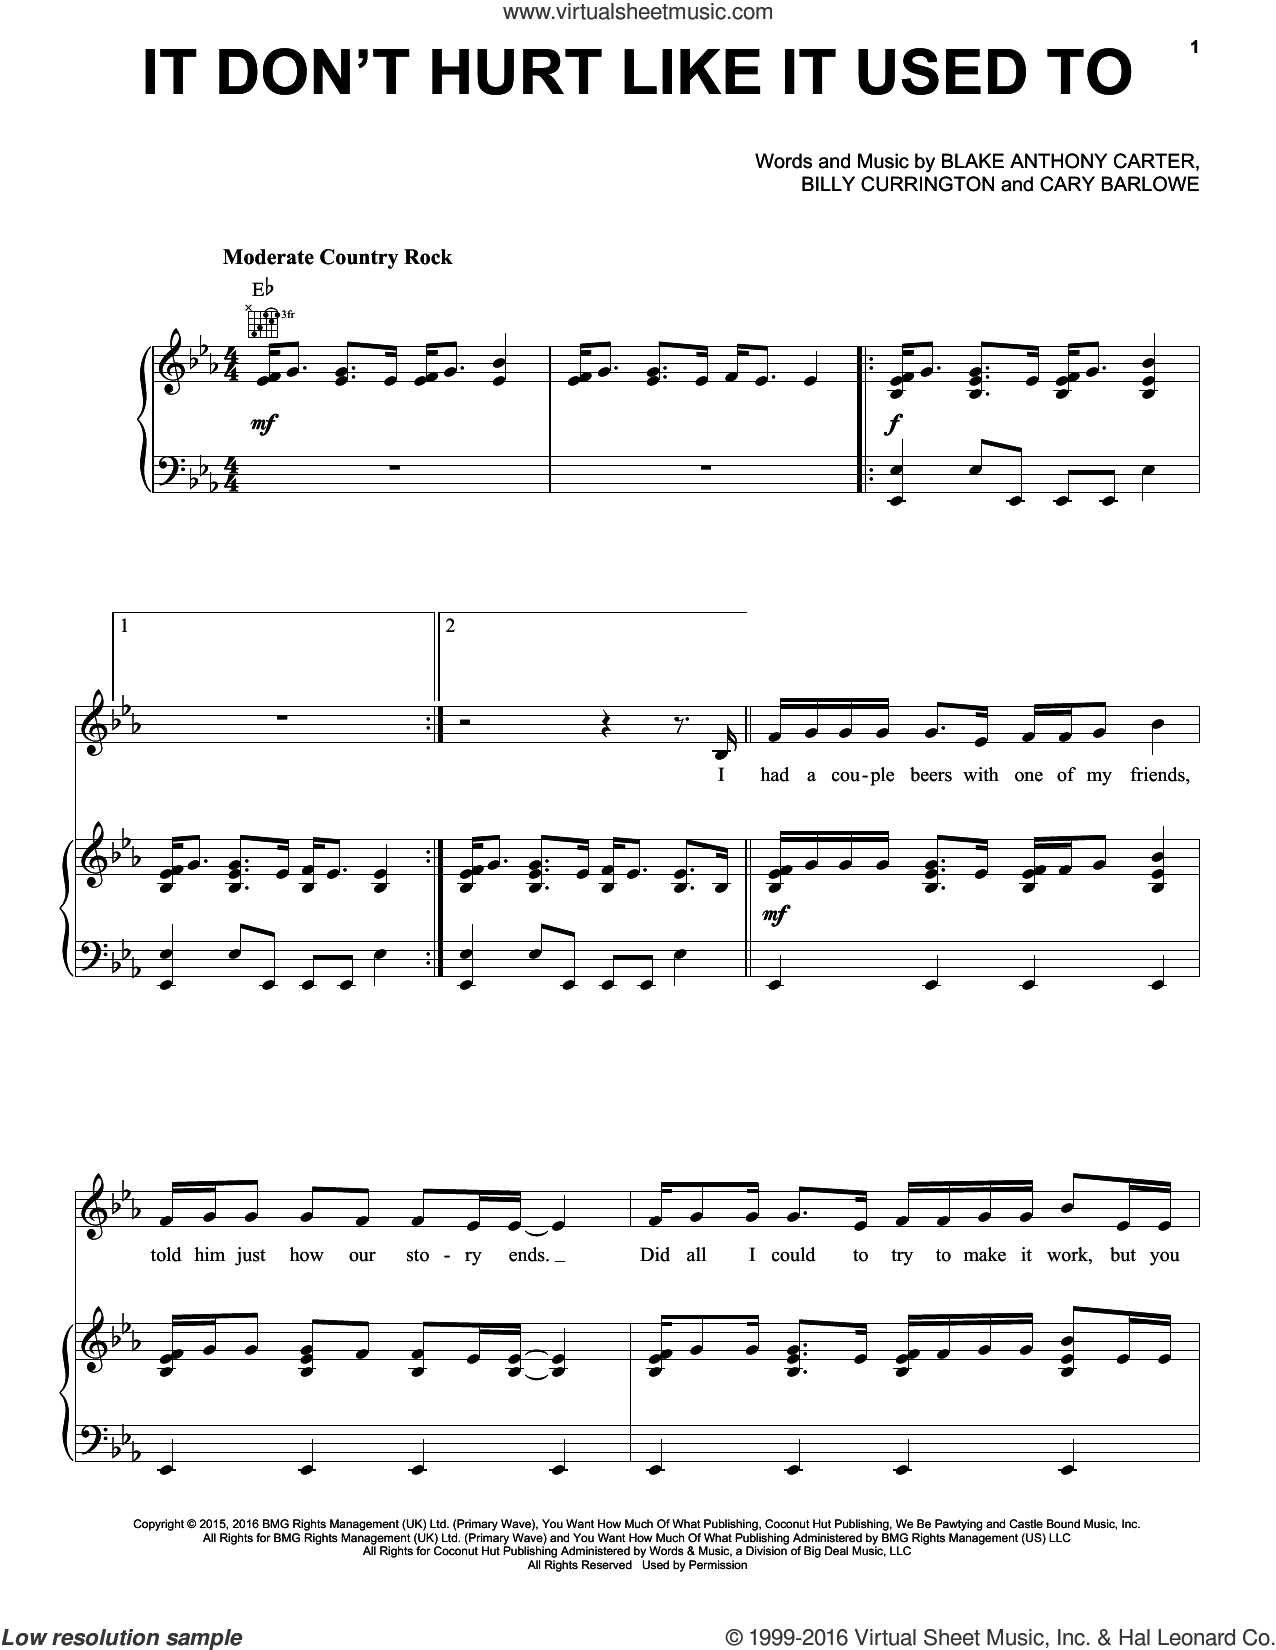 It Don't Hurt Like It Used To sheet music for voice, piano or guitar by Billy Currington, Blake Anthony Carter and Cary Barlowe, intermediate skill level